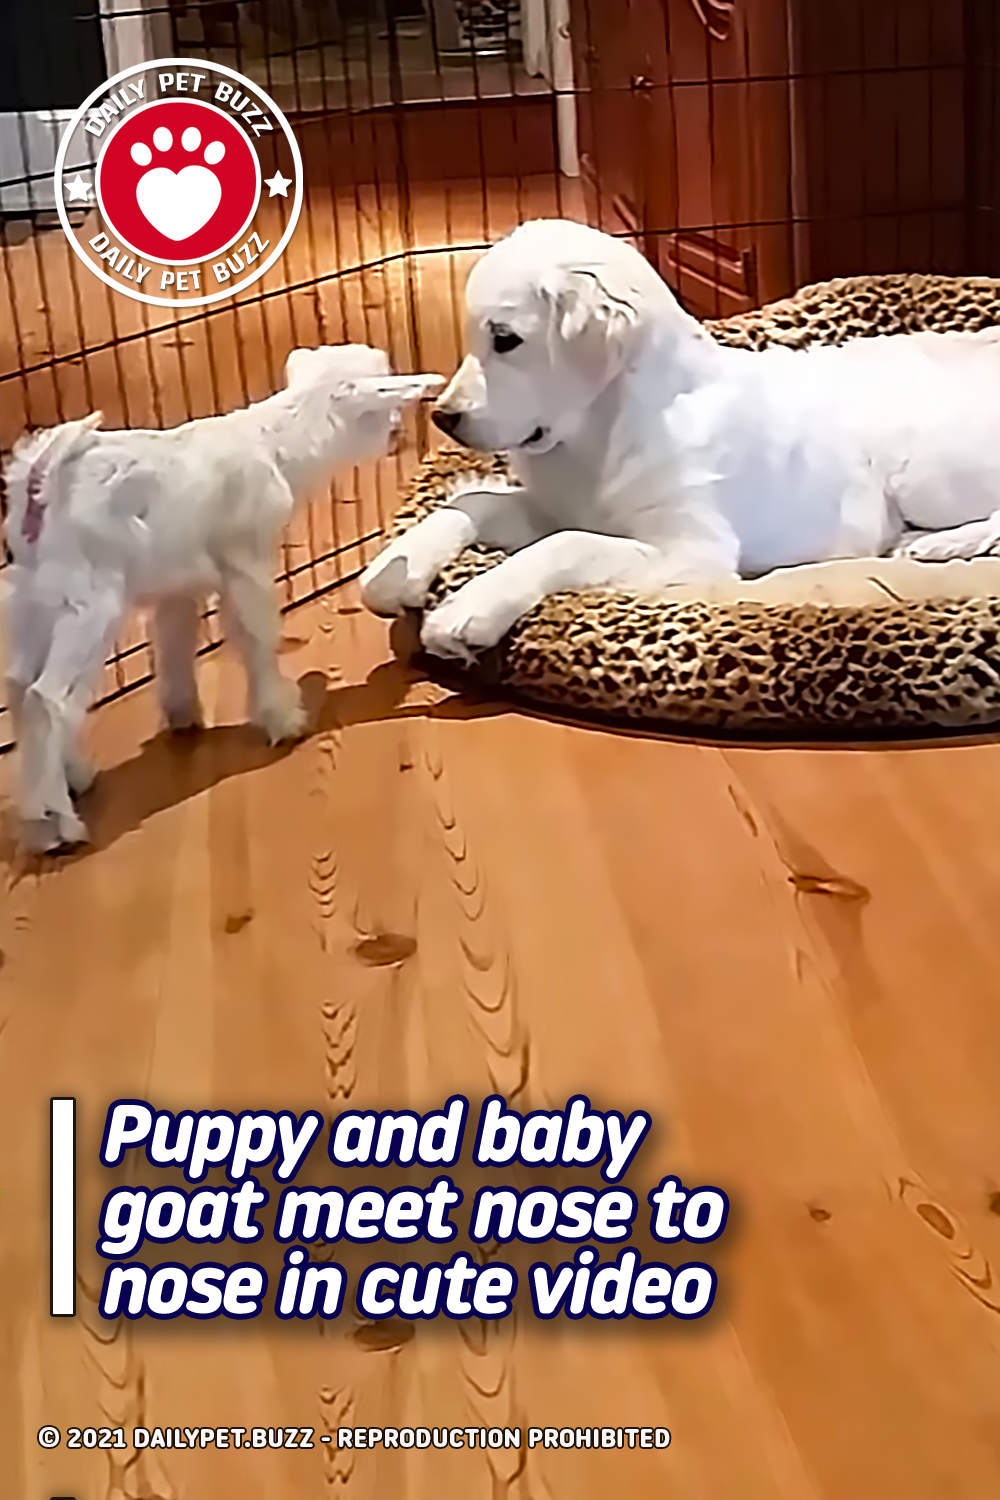 Puppy and baby goat meet nose to nose in cute video